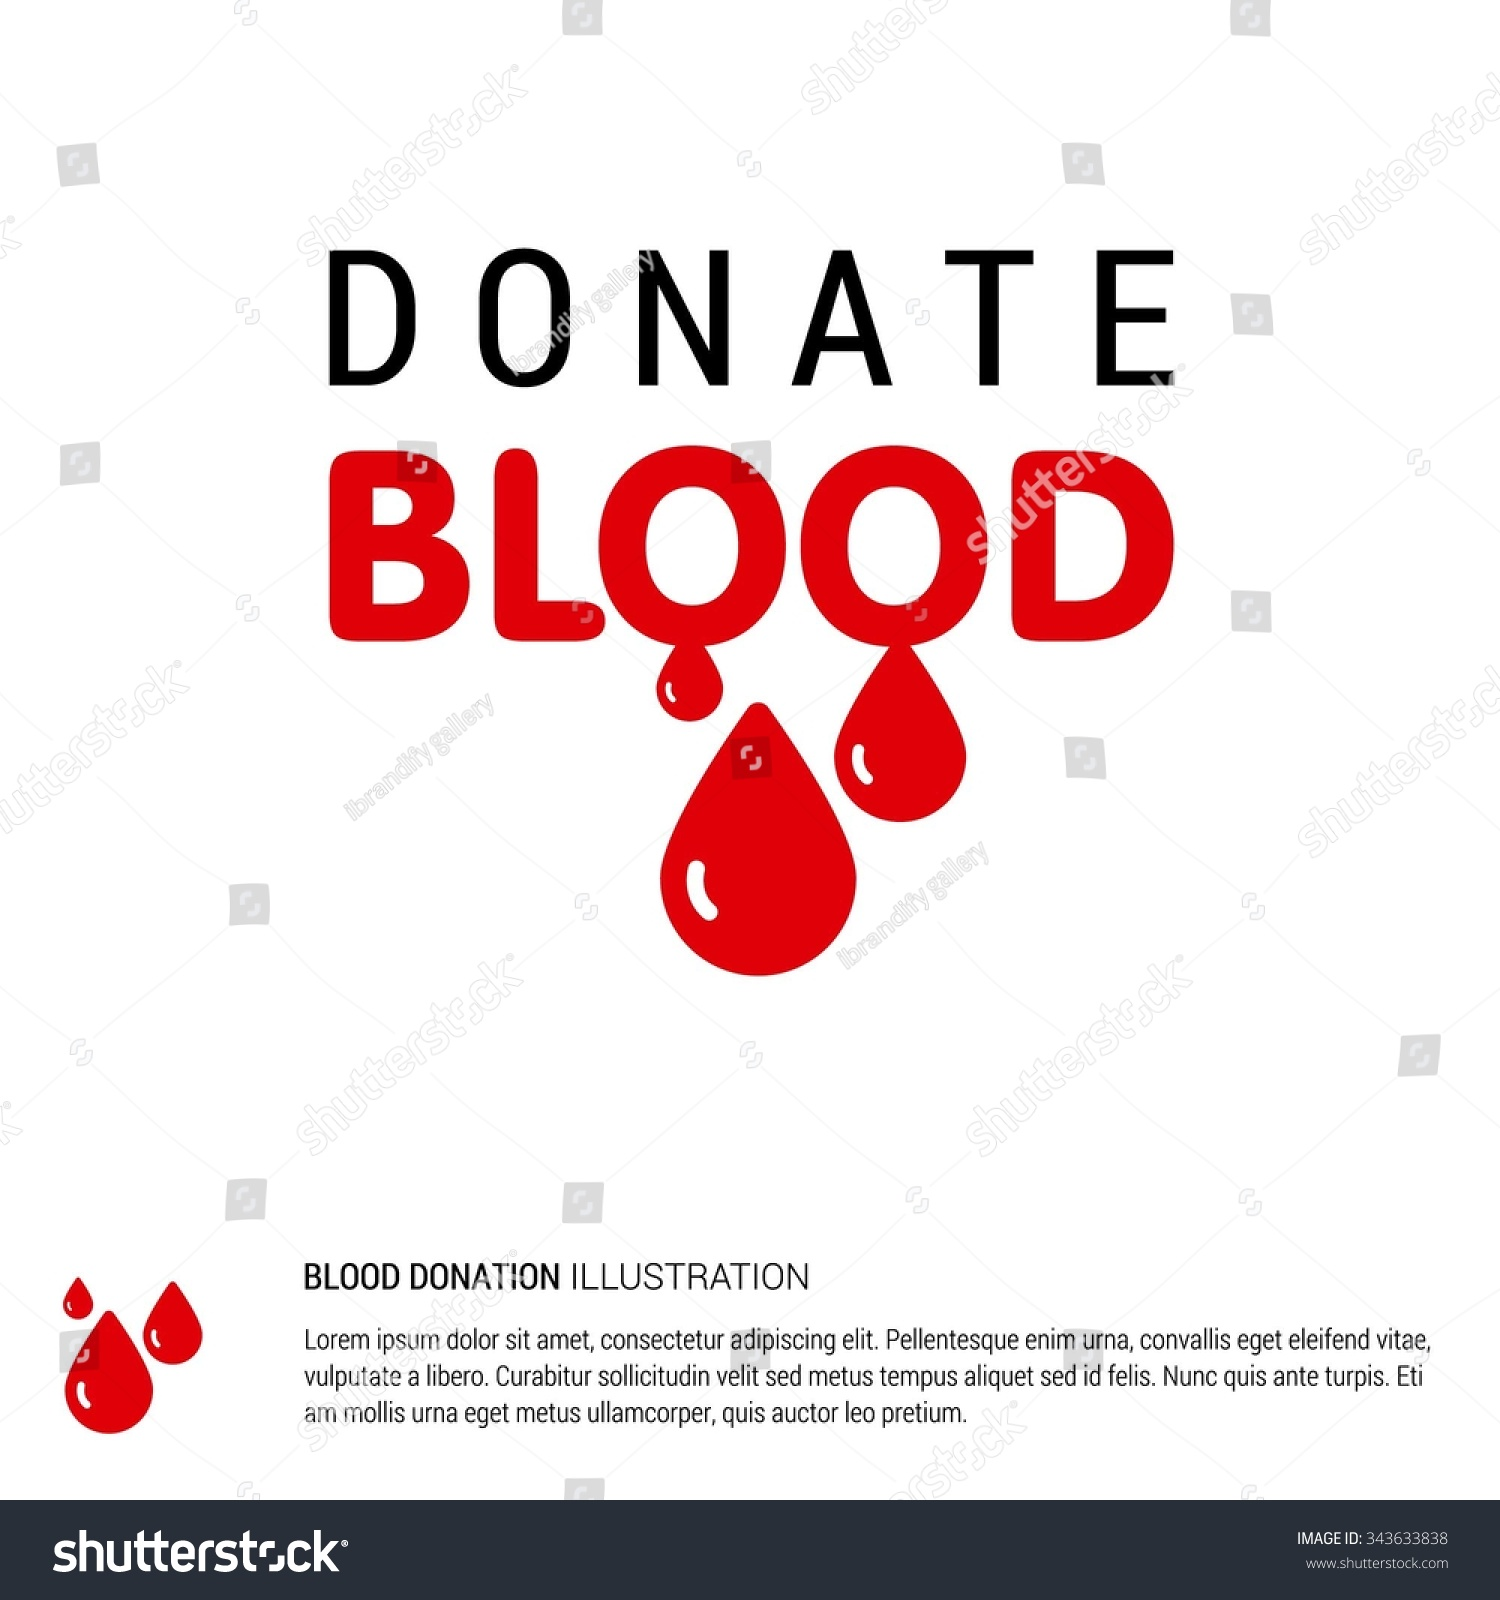 Poster design on blood donation - Donate Blood Creative Typography Design Template Health Care Poster Design Isolated On White Background